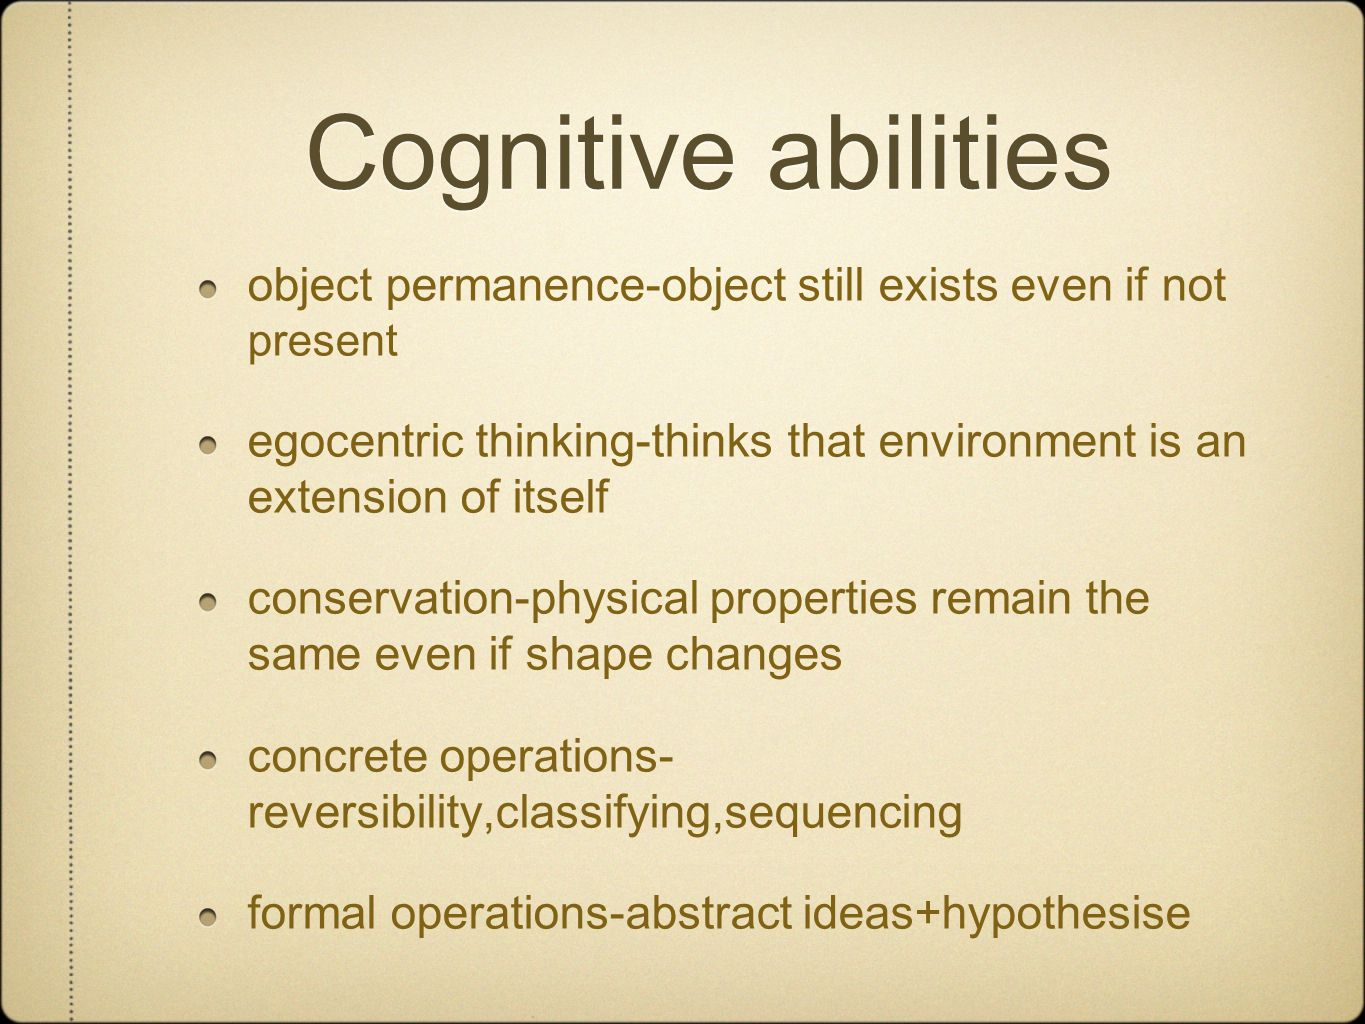 Cognitive abilities object permanence-object still exists even if not present egocentric thinking-thinks that environment is an extension of itself conservation-physical properties remain the same even if shape changes concrete operations- reversibility,classifying,sequencing formal operations-abstract ideas+hypothesise